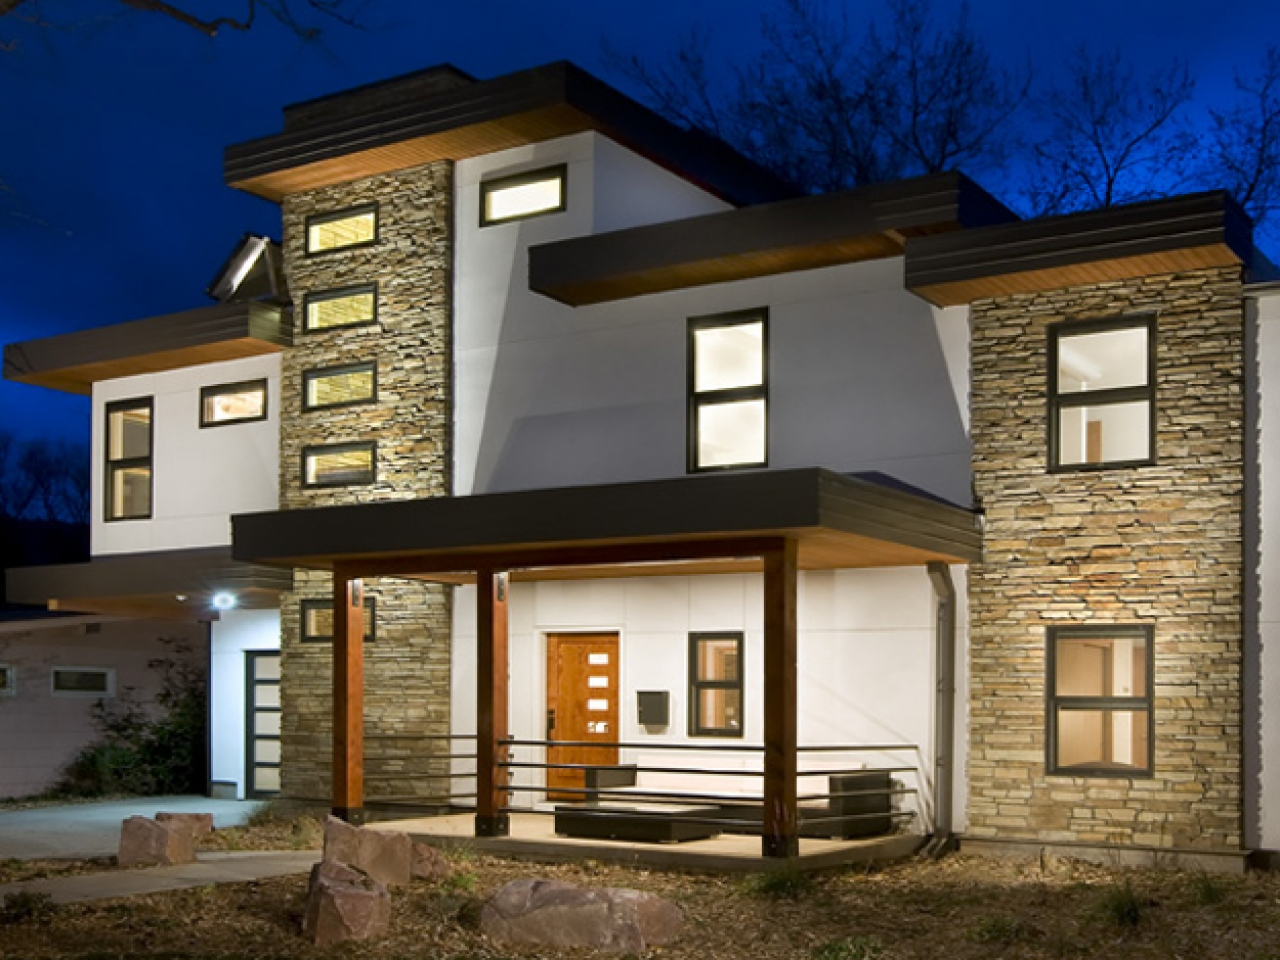 Design Home Ideas Home Energy Efficient Technology Modern Energy Efficient